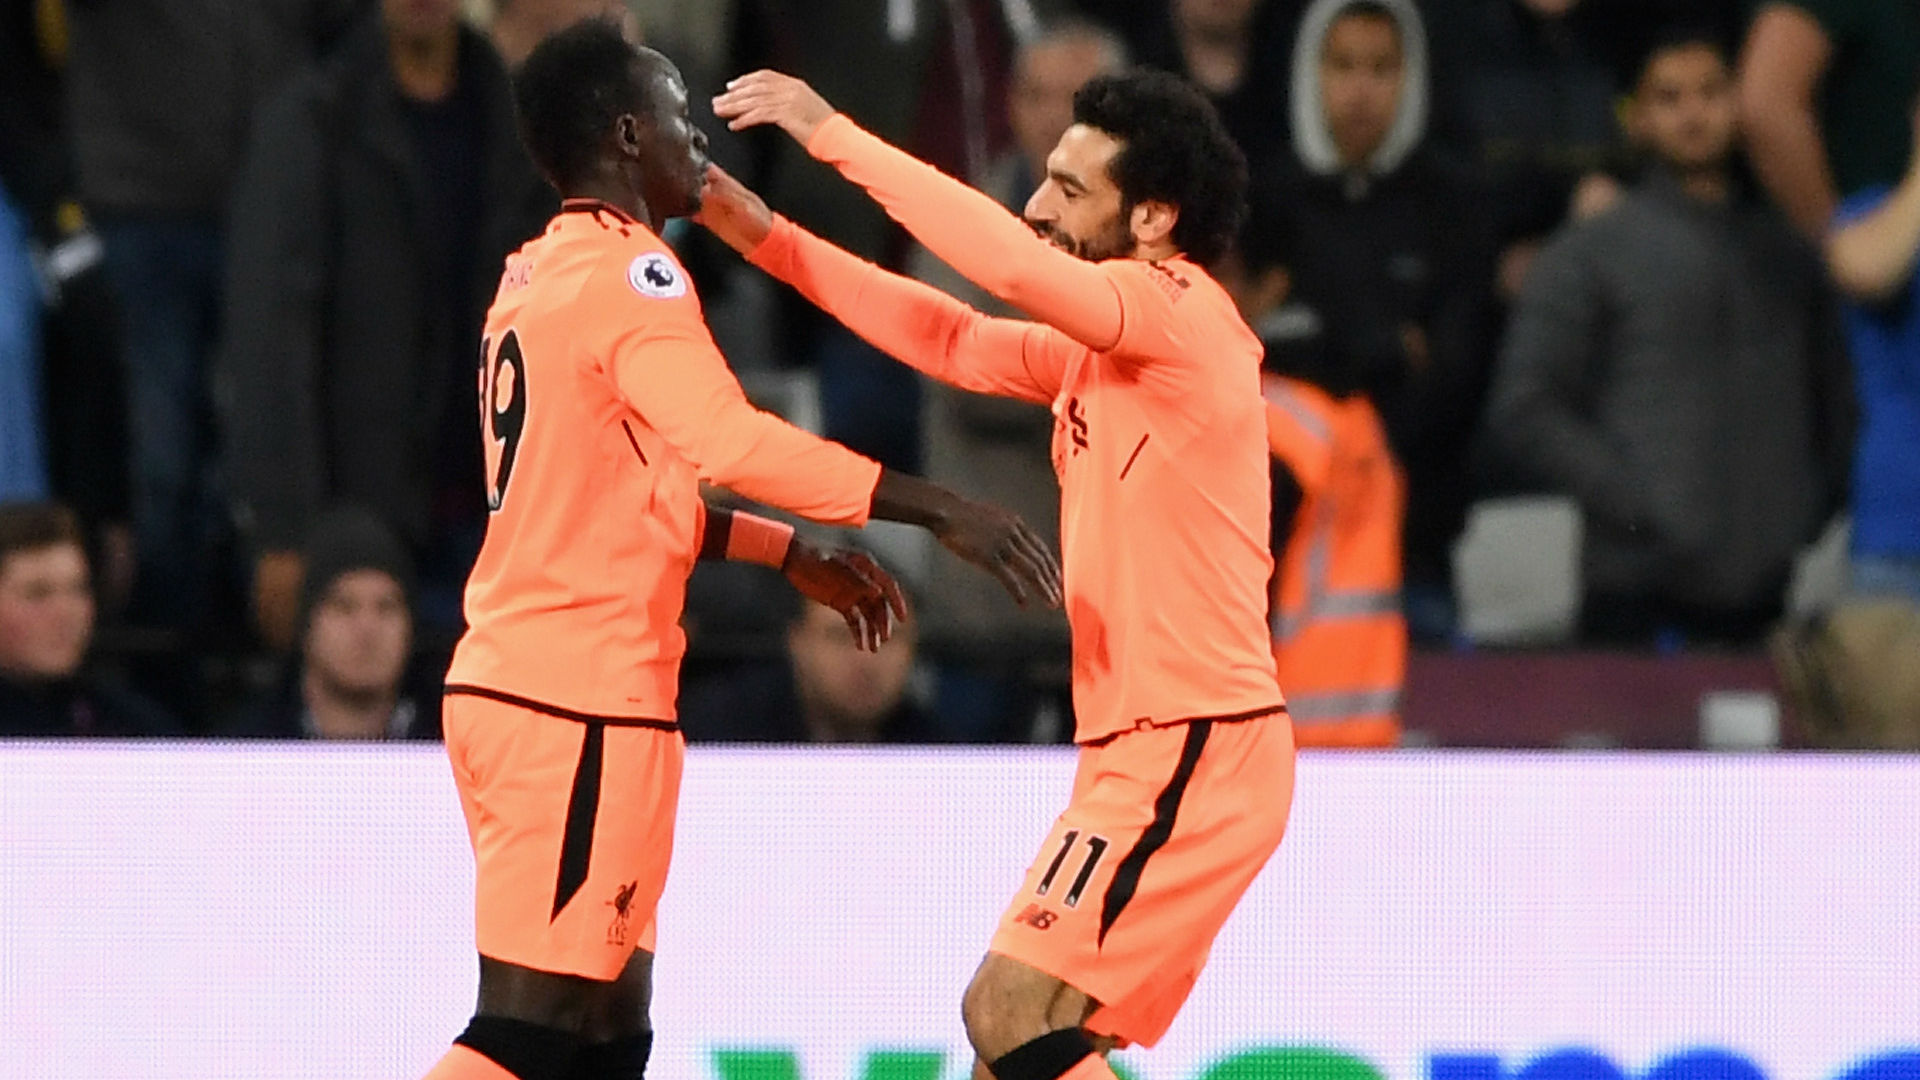 Video: Salah and Mane were good... but don't forget Firmino! - Klopp